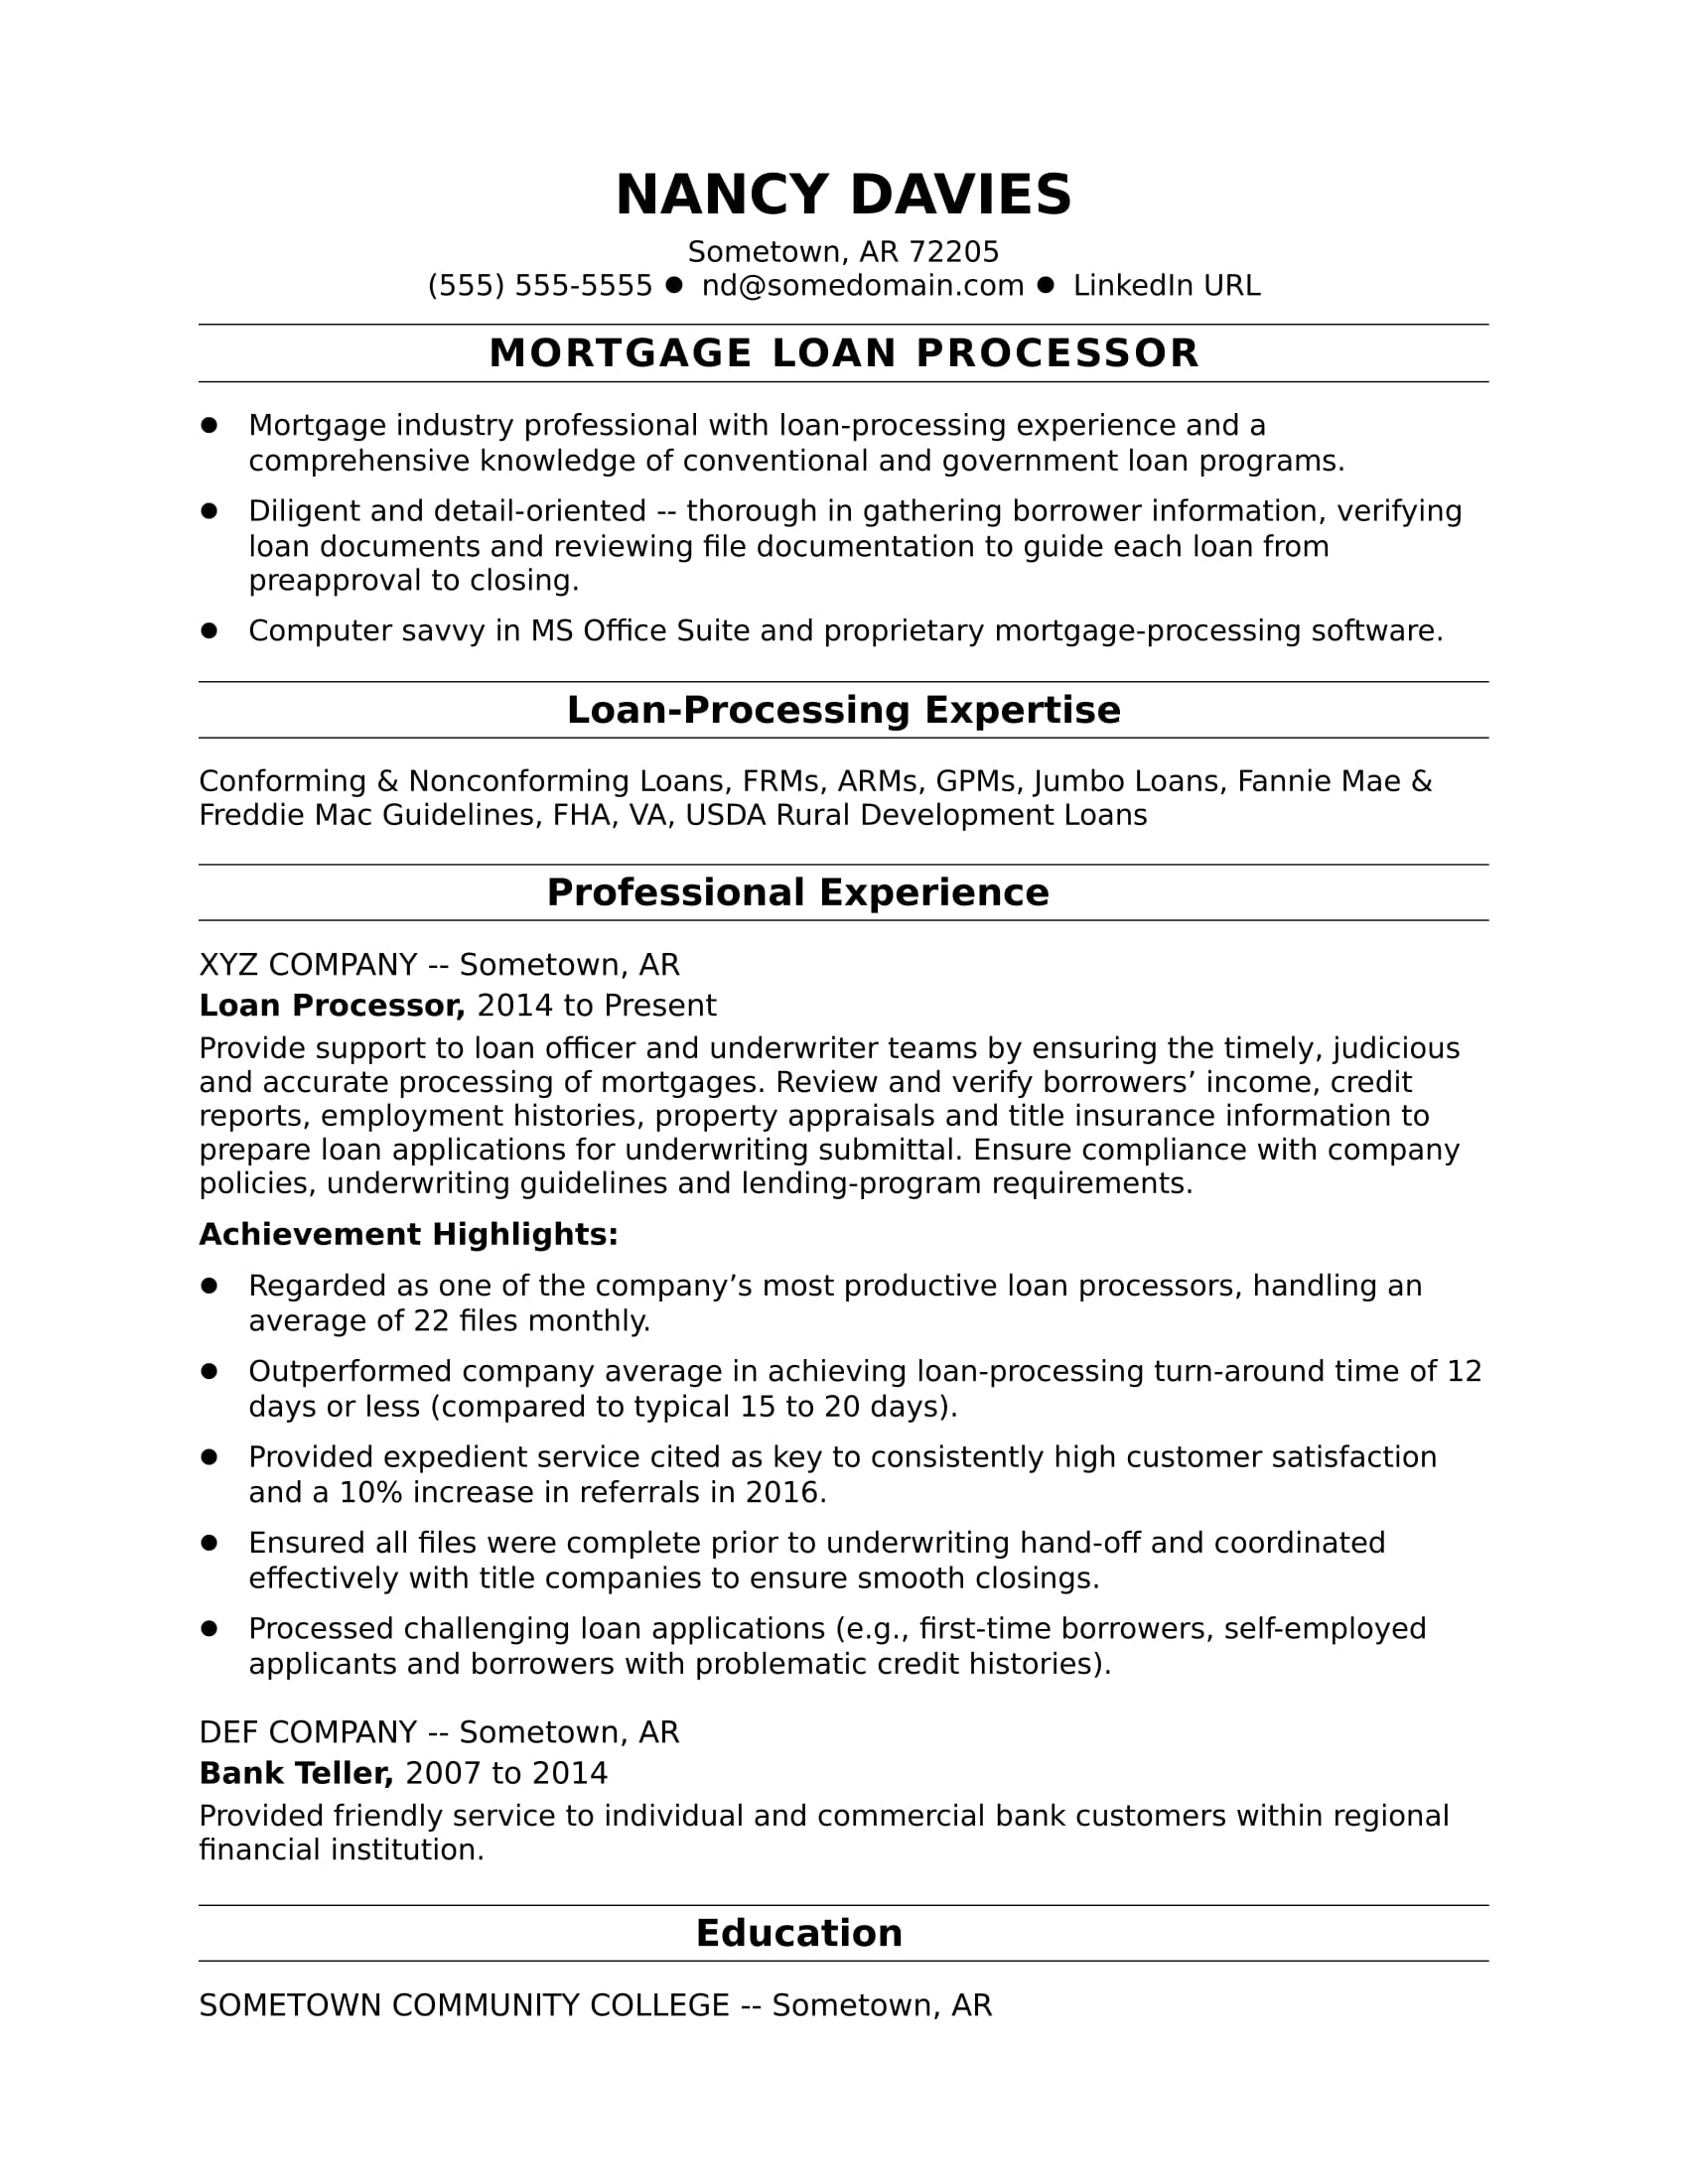 Sample Resume For A Mortgage Loan Processor  Achievements Resume